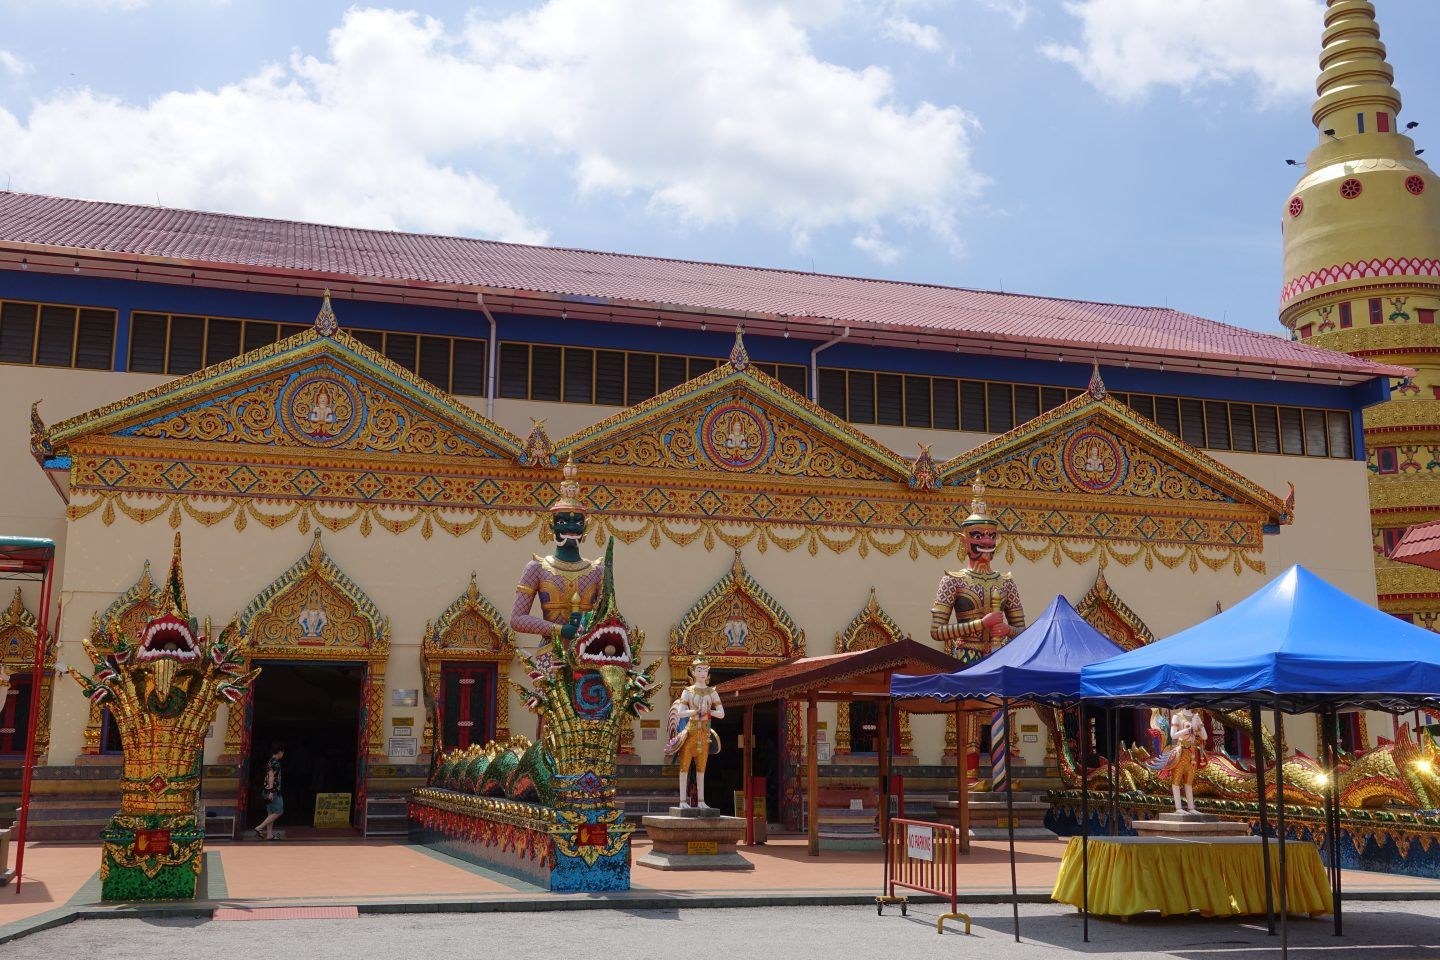 Visiting the Reclining Buddha Temple in Penang